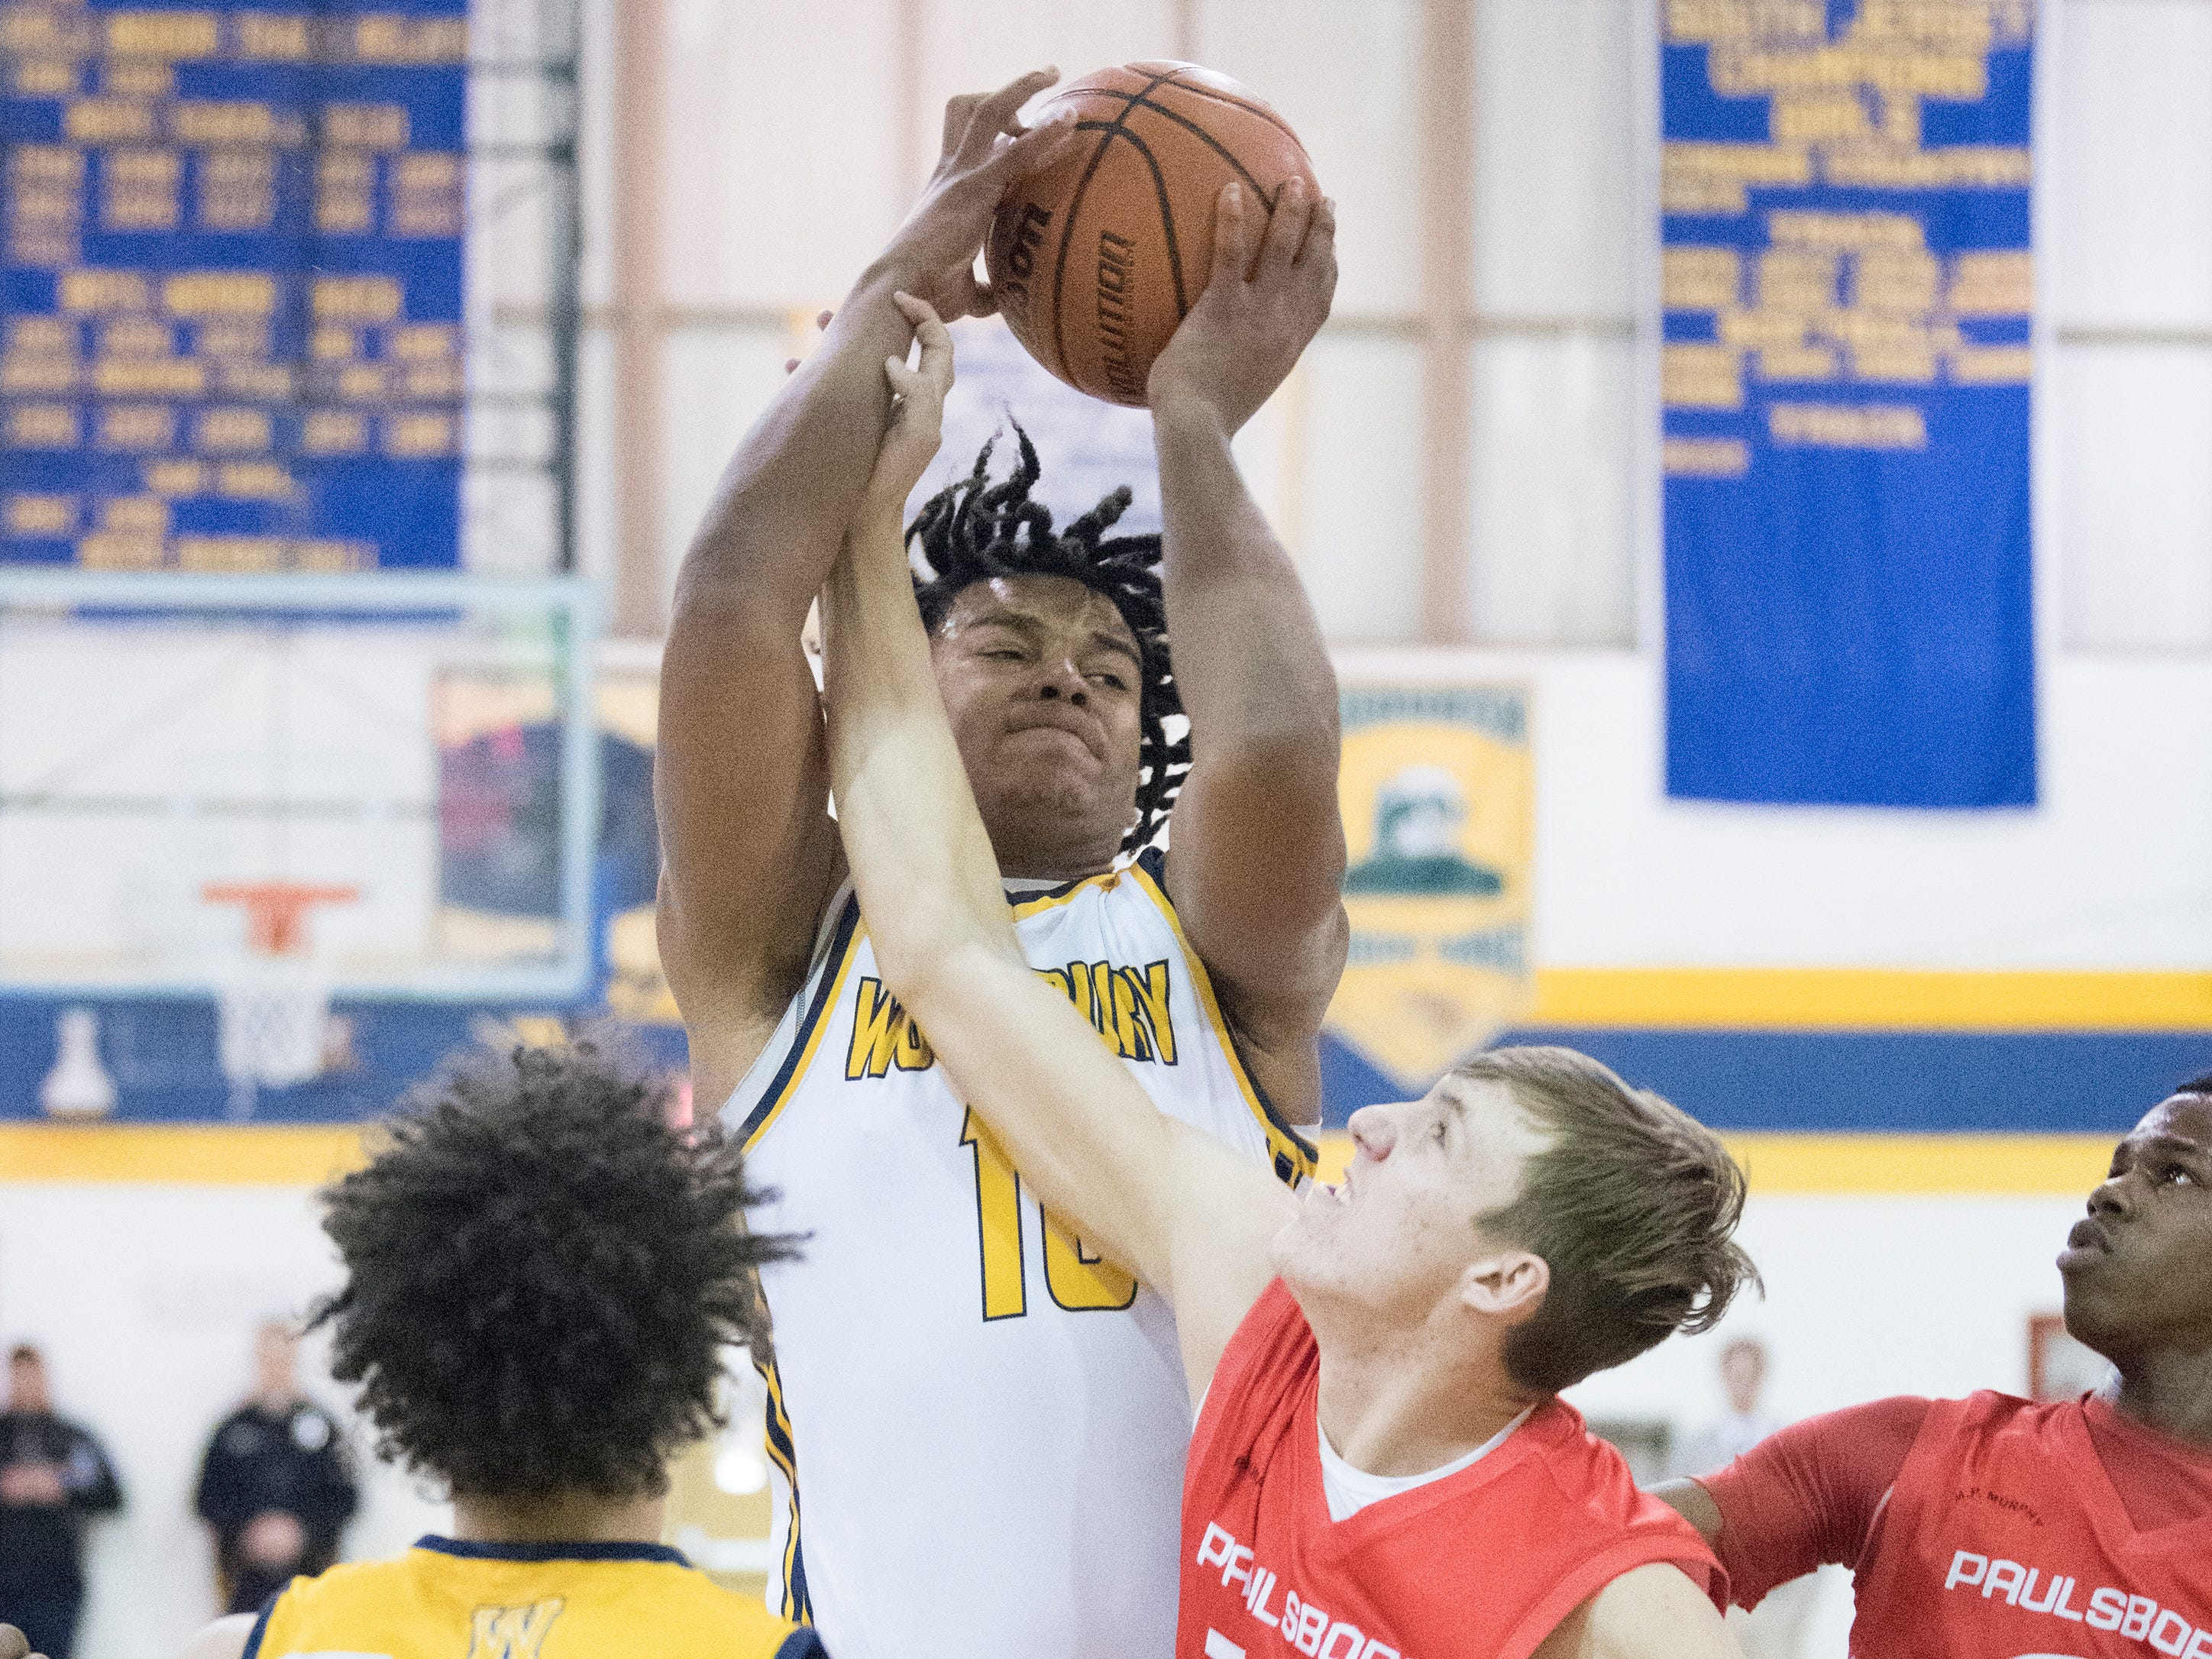 Woodbury's Isaiah Bailey grabs a rebound during the 2nd quarter of the South Jersey Group 1, first round boys basketball playoff game between Woodbury and Paulsboro, played at Woodbury High School on Tuesday, February 26, 2019.   Woodbury defeated Paulsboro, 69-41.